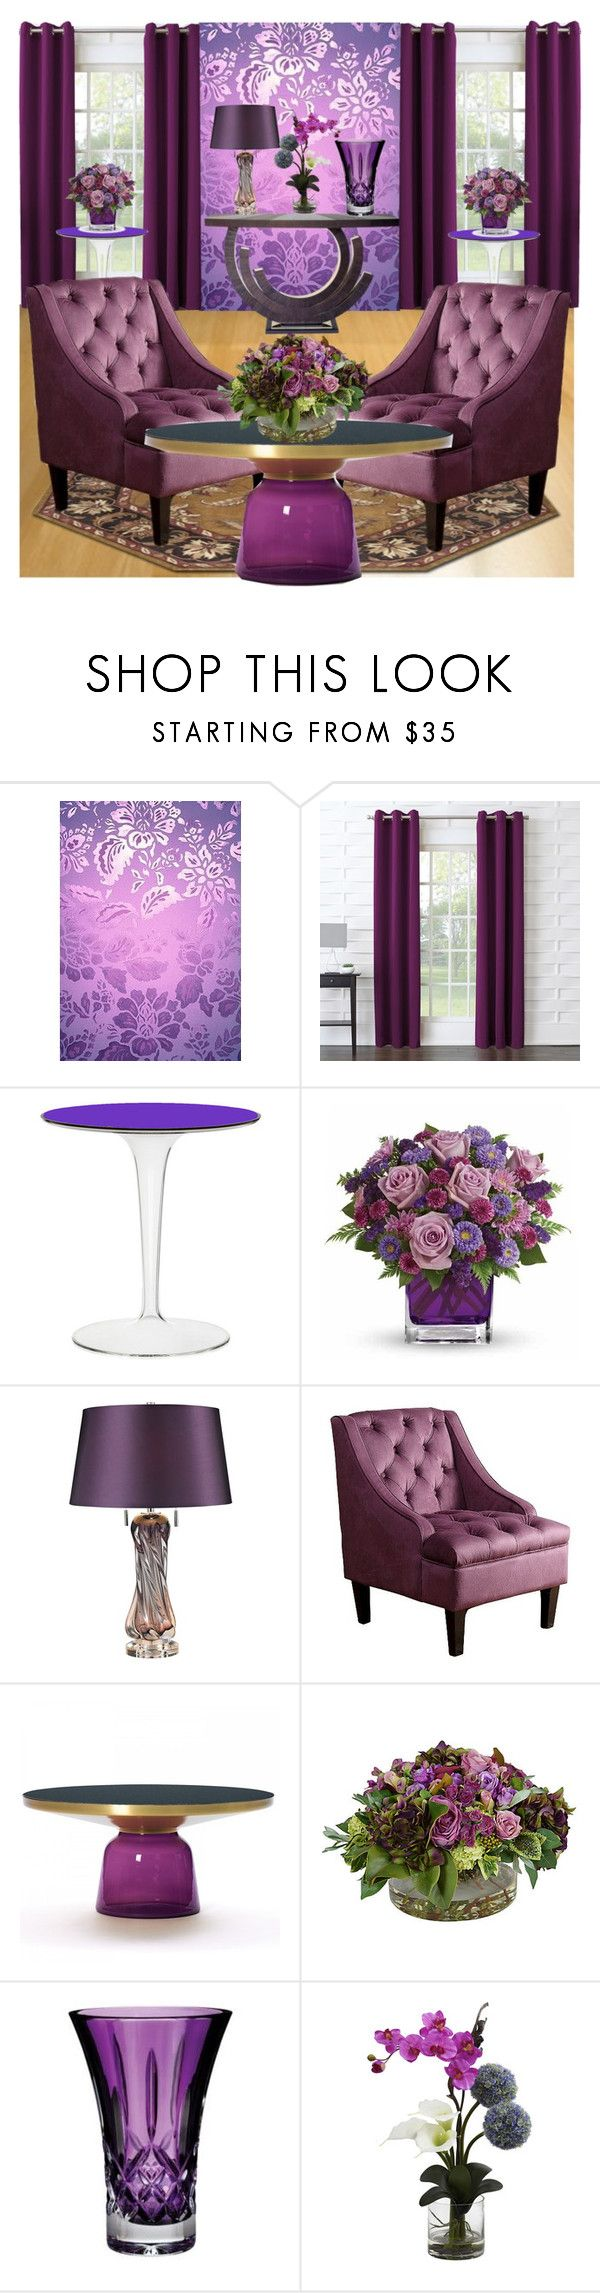 """""""Purple Sitting Room"""" by aharcaki ❤ liked on Polyvore featuring WALL, Sun Zero, Kartell, Universal Lighting and Decor, Surya, Abbyson Living, The French Bee, Waterford and Nearly Natural"""